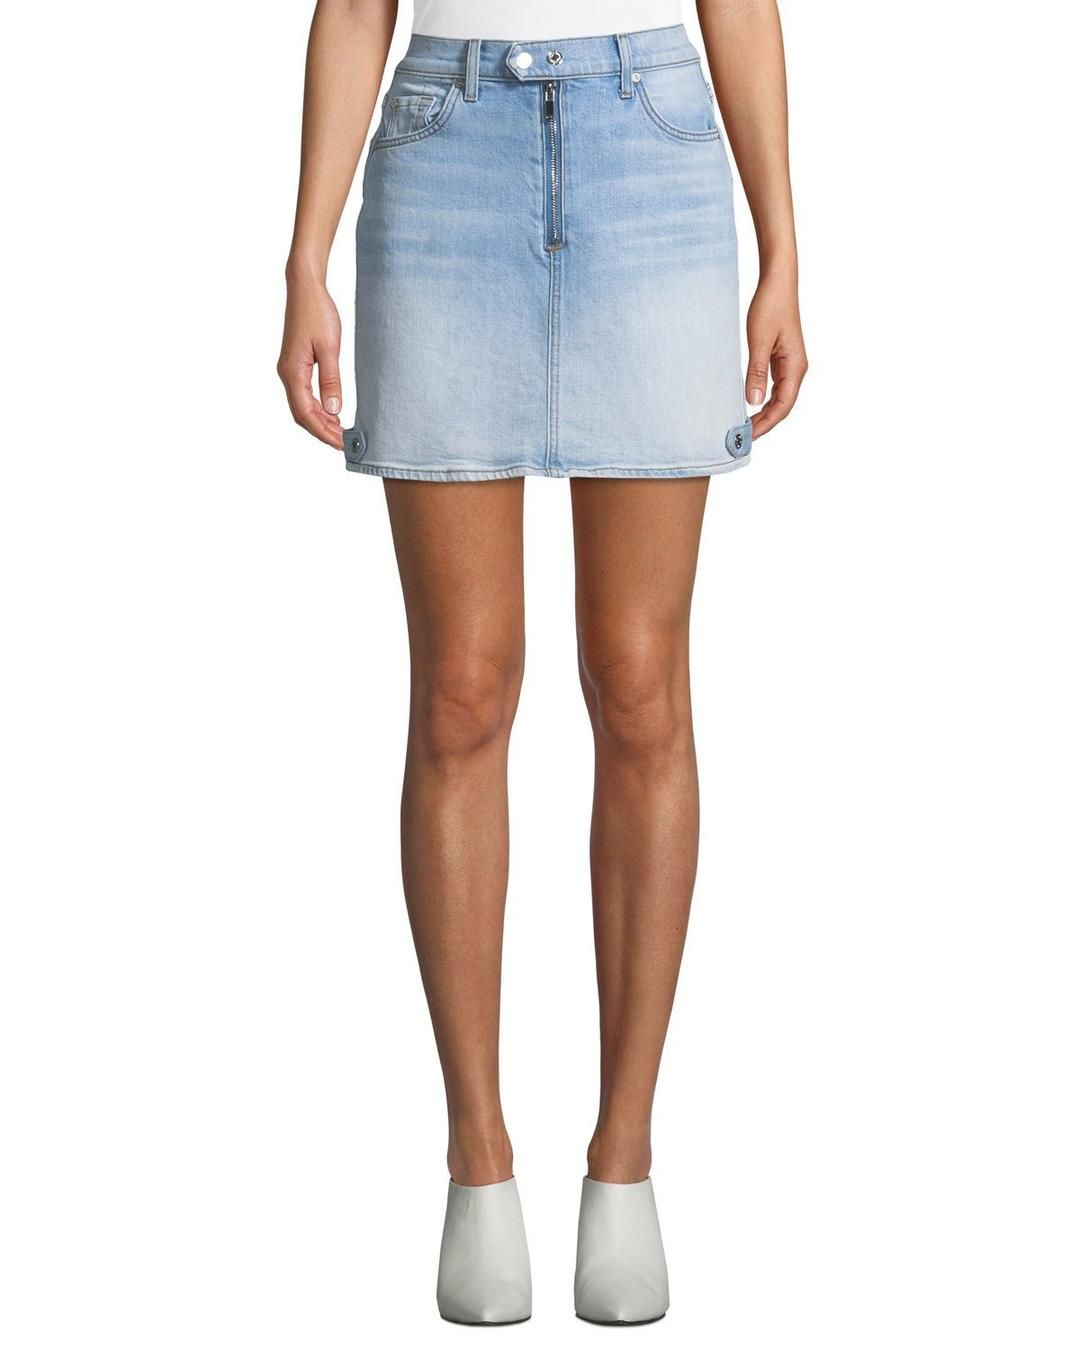 75f092a7adf10 What cooler way to wear a denim miniskirt than styled with an all-black  look, including a sleek leather jacket?